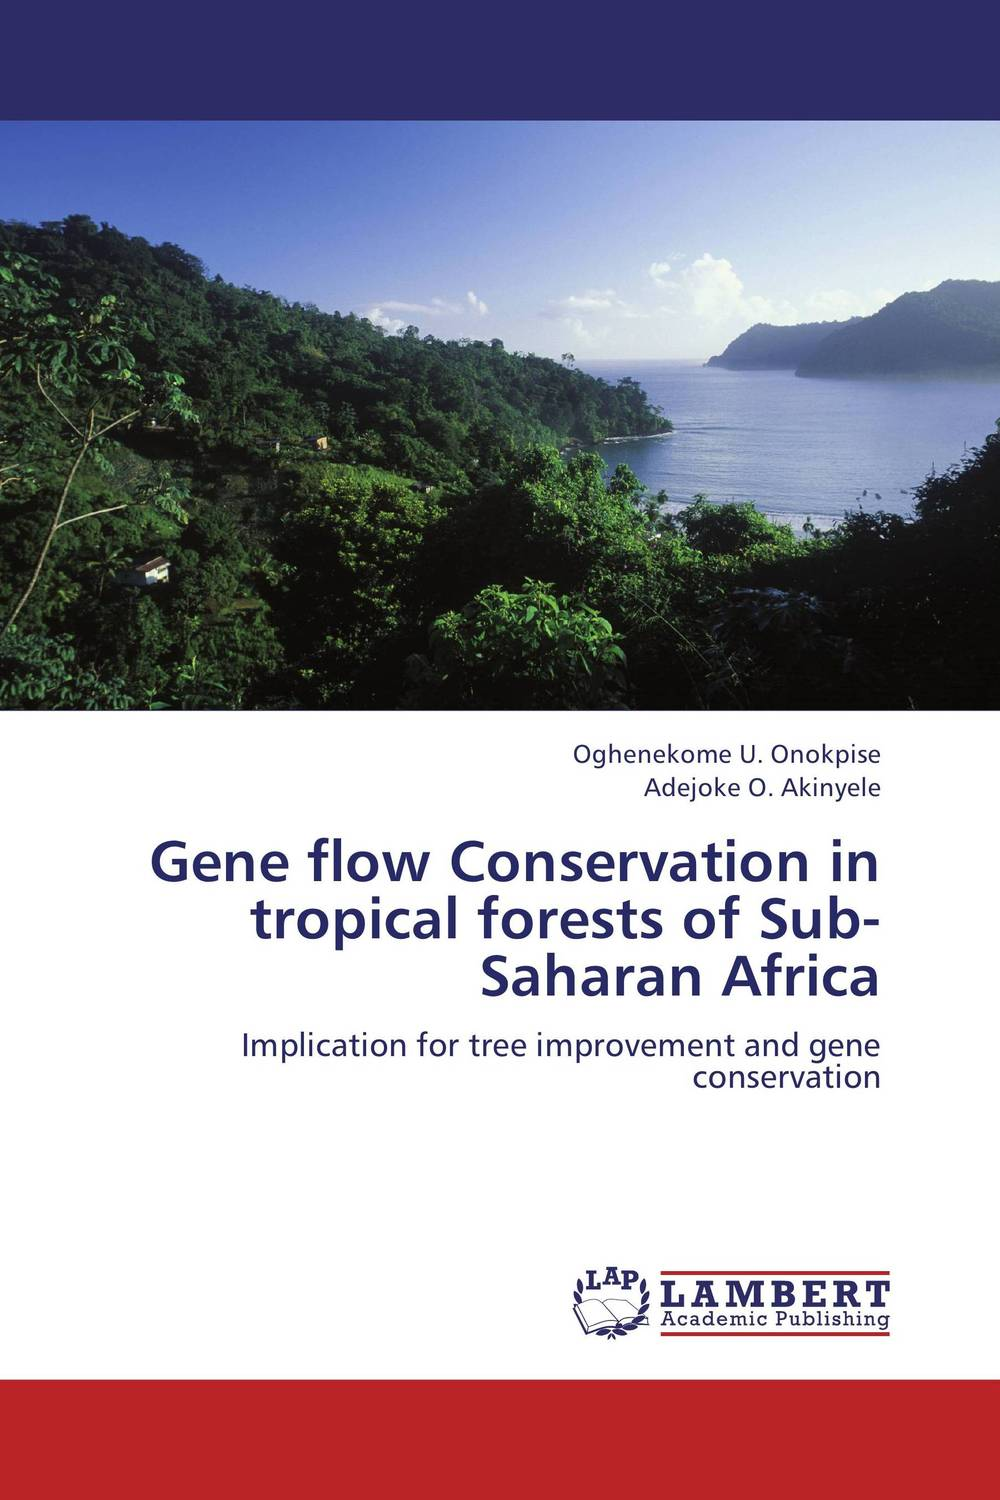 все цены на Gene flow Conservation in tropical forests of Sub-Saharan Africa